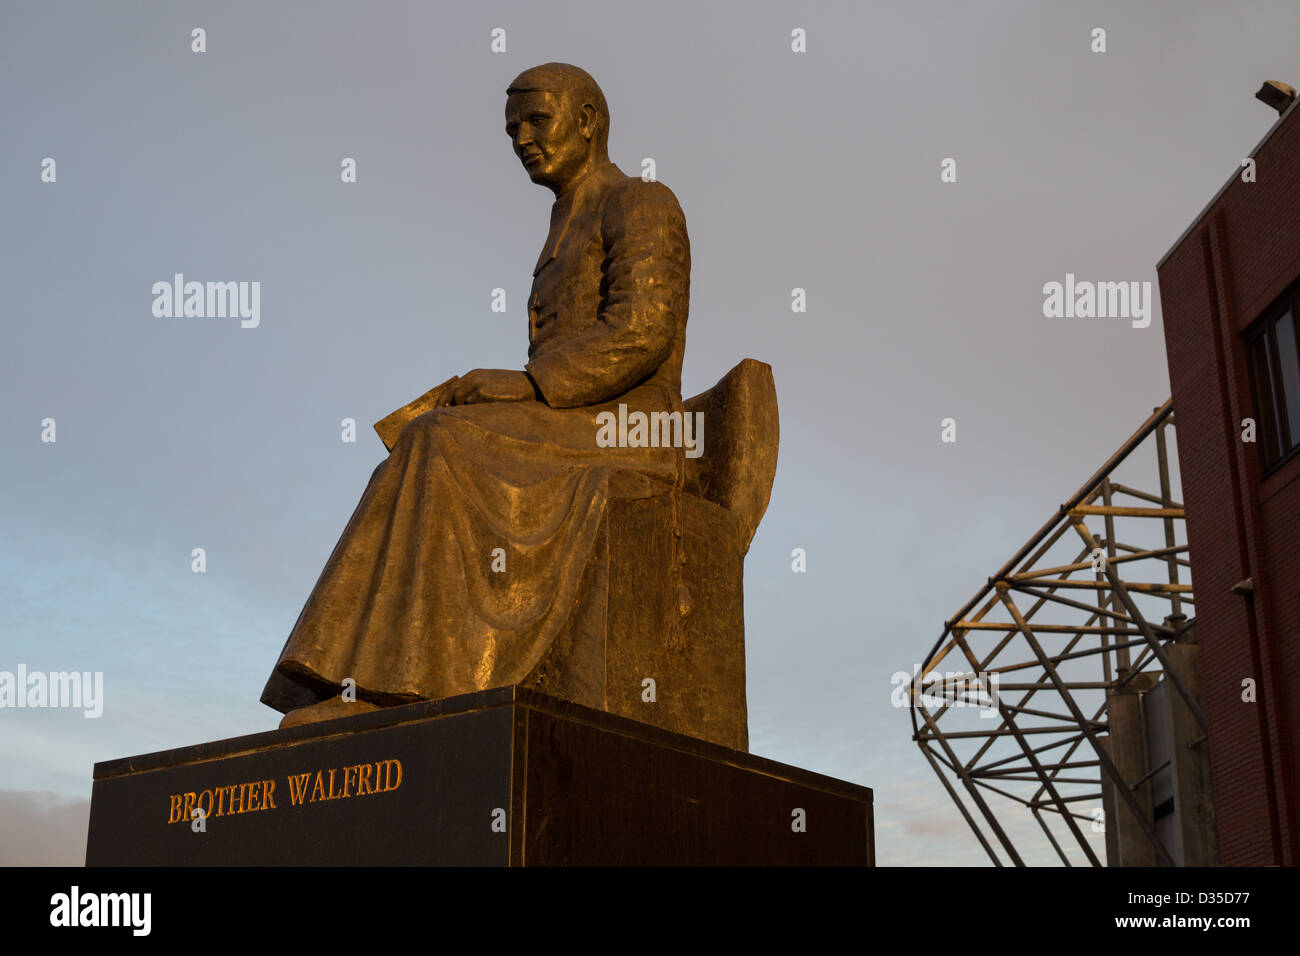 Statue of Brother Walfrid, (Andrew Kerins) outside Celtic Football Club, at Parkhead Stadium, Glasgow, Scotland. - Stock Image